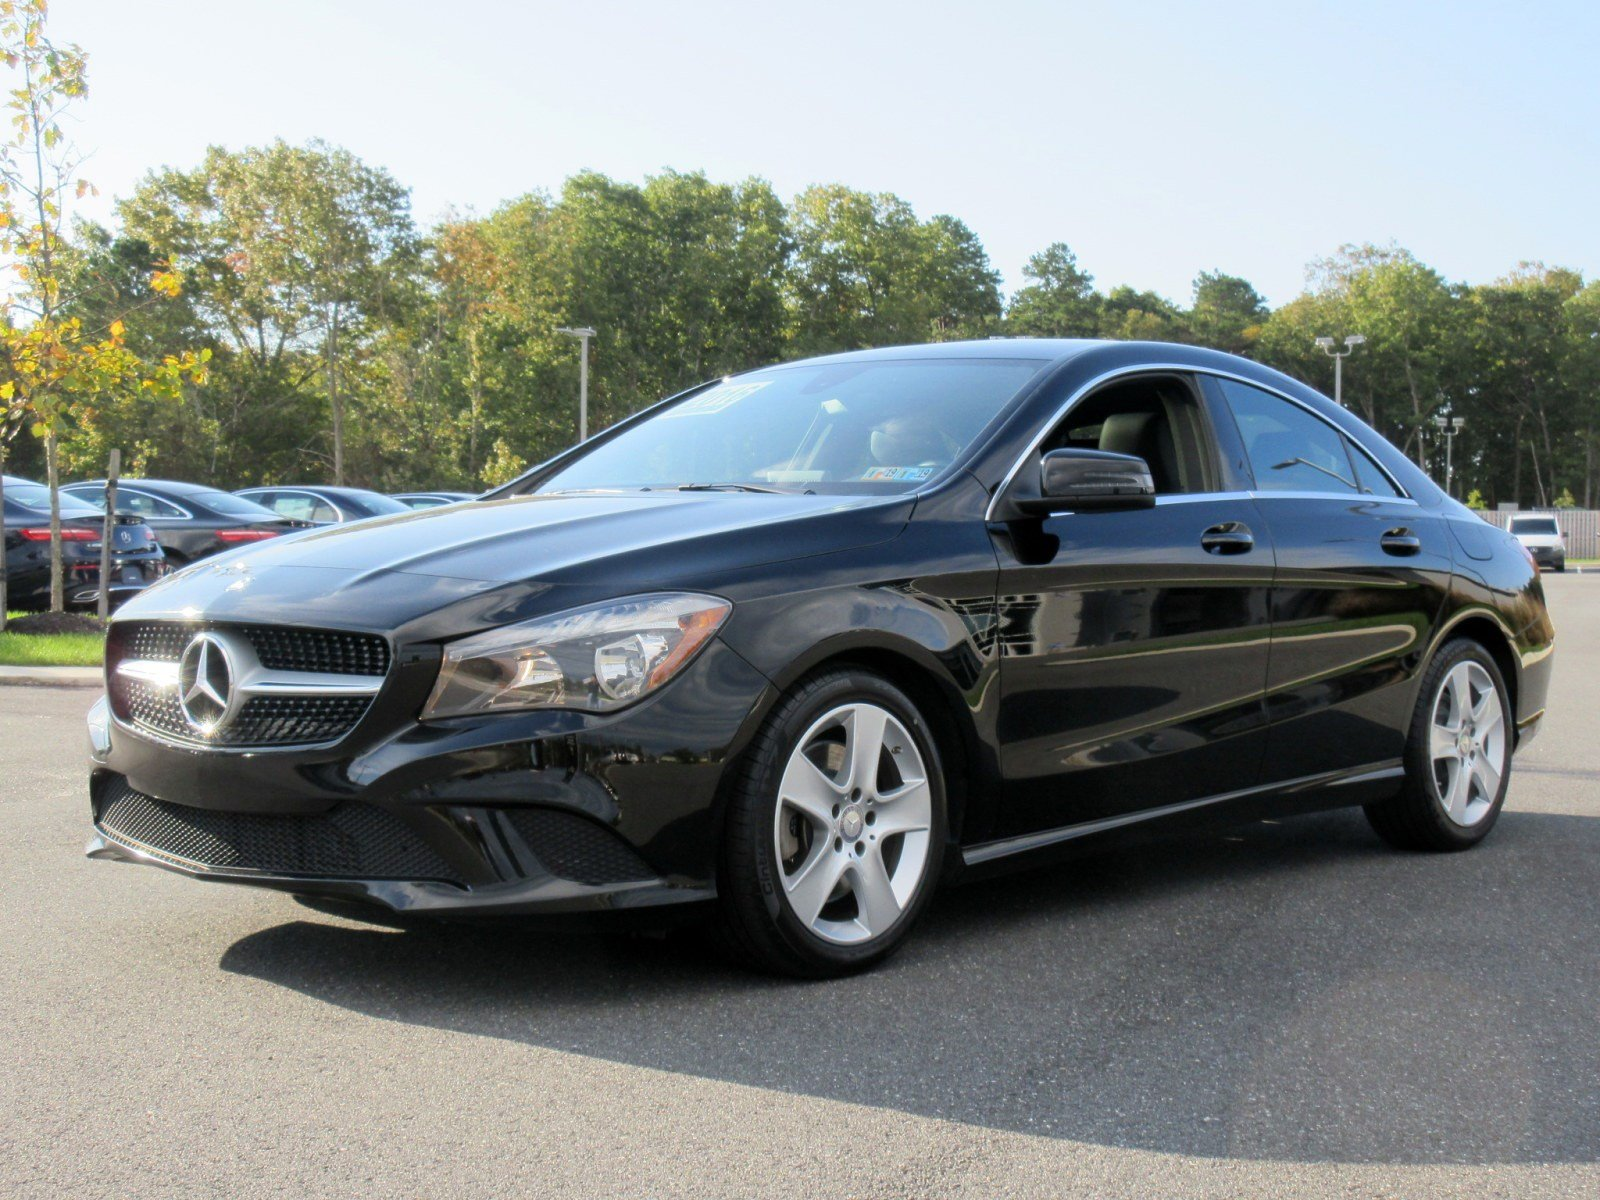 Certified Pre Owned 2016 Mercedes Benz CLA CLA 250 Coupe in Fort